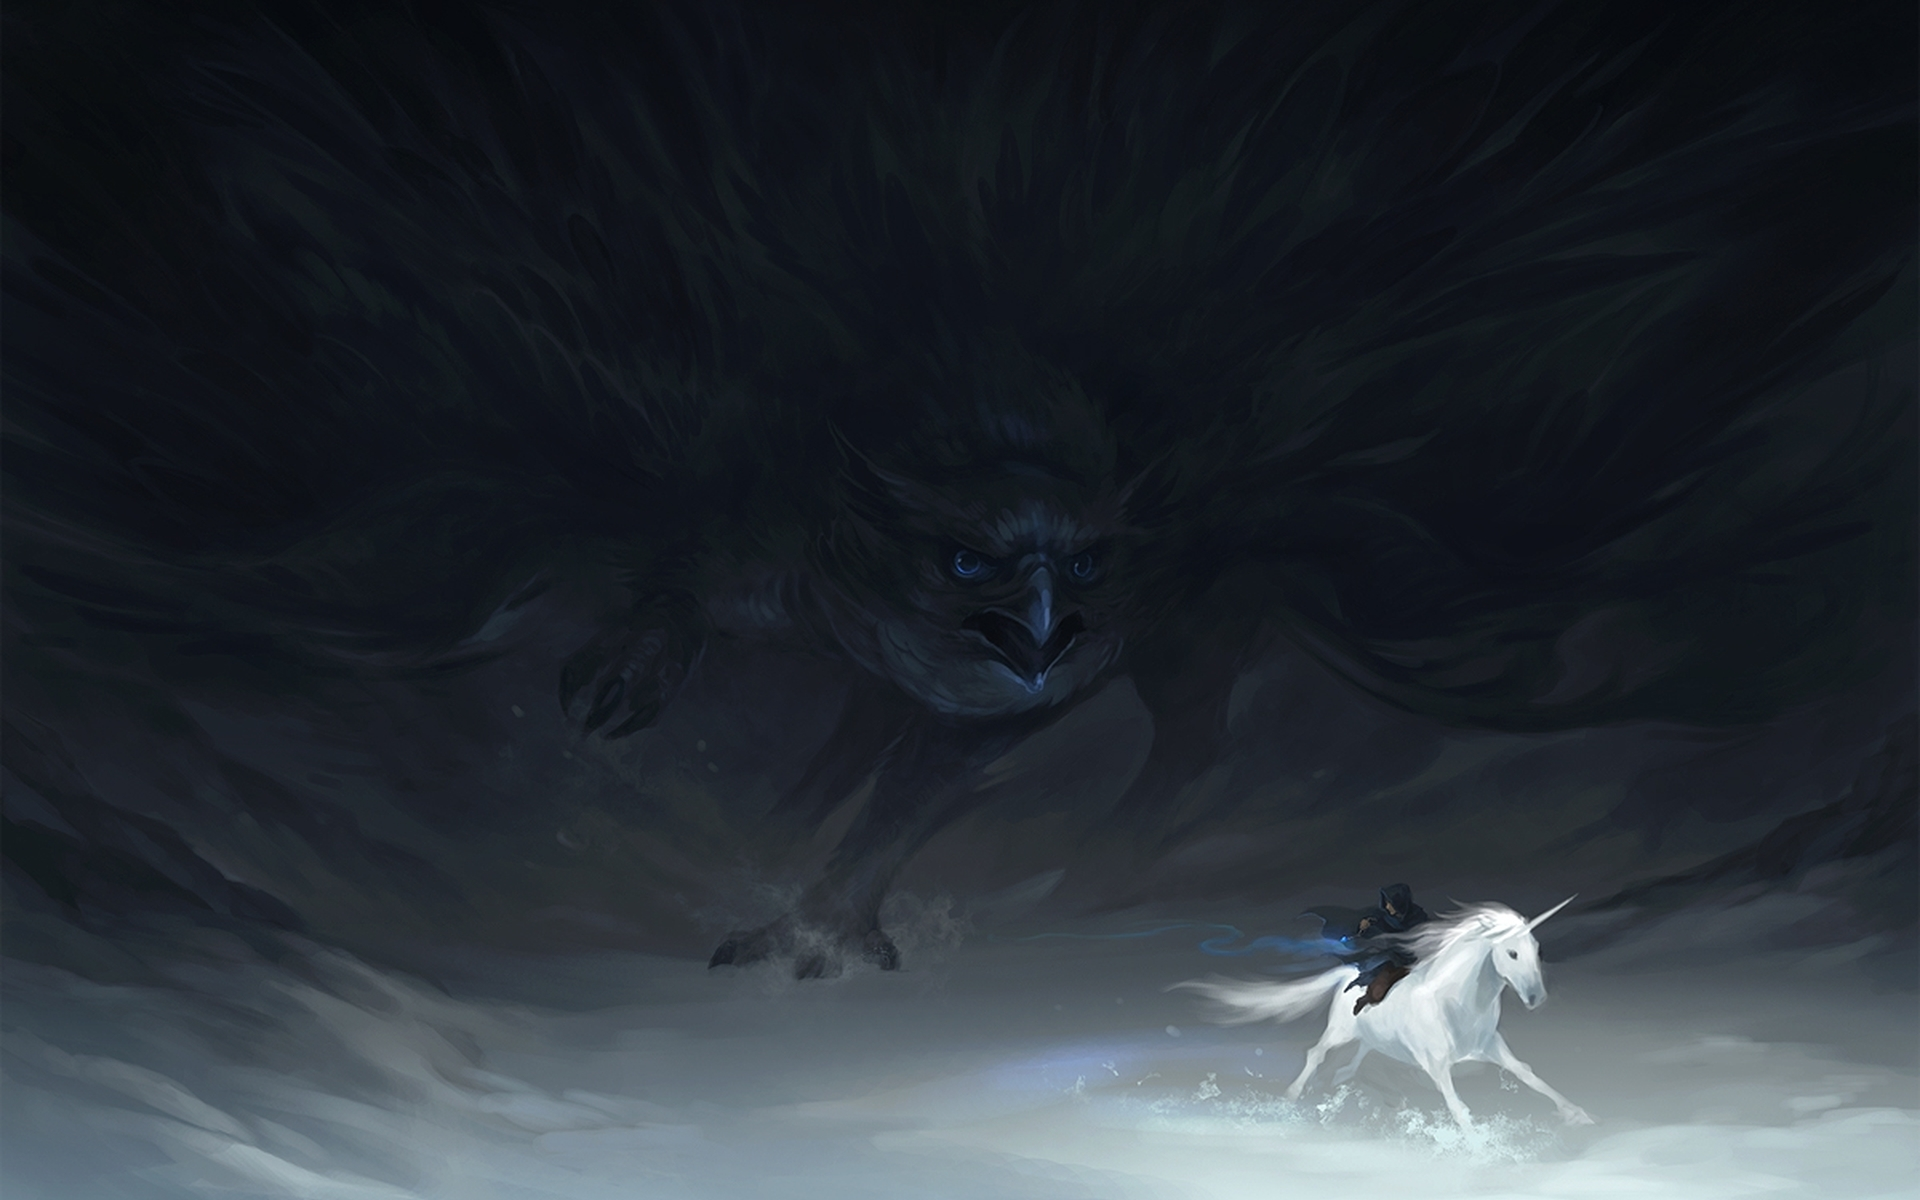 Fantasy art unicorn dark gothic bird raven wallpaper 1920x1200 1920x1200